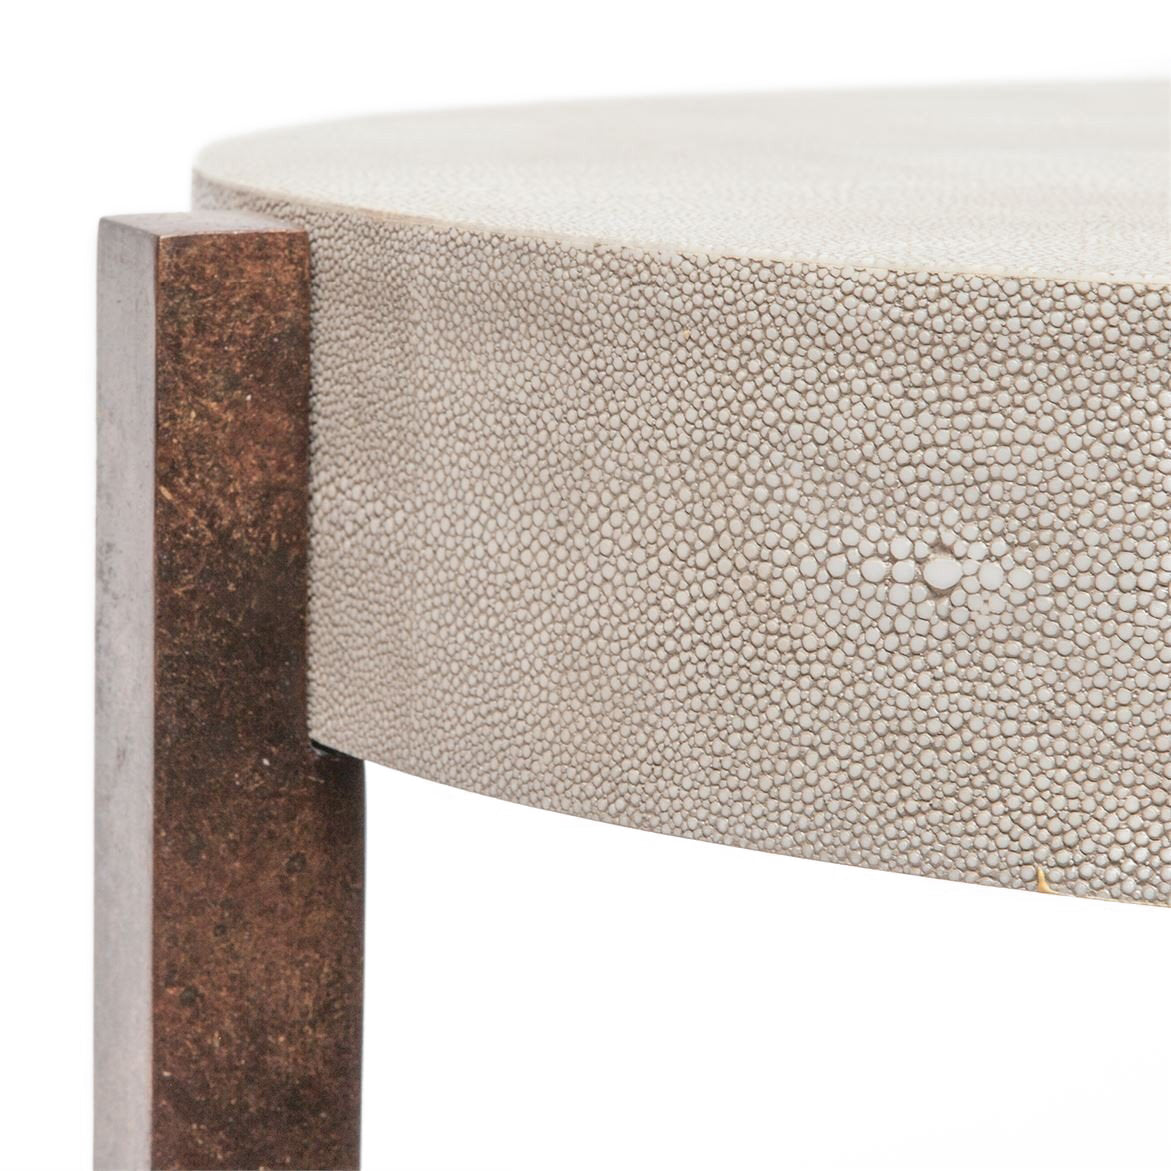 made goods dexter coffee table sand bronze faux shagreen coffee table unique coffee table detail